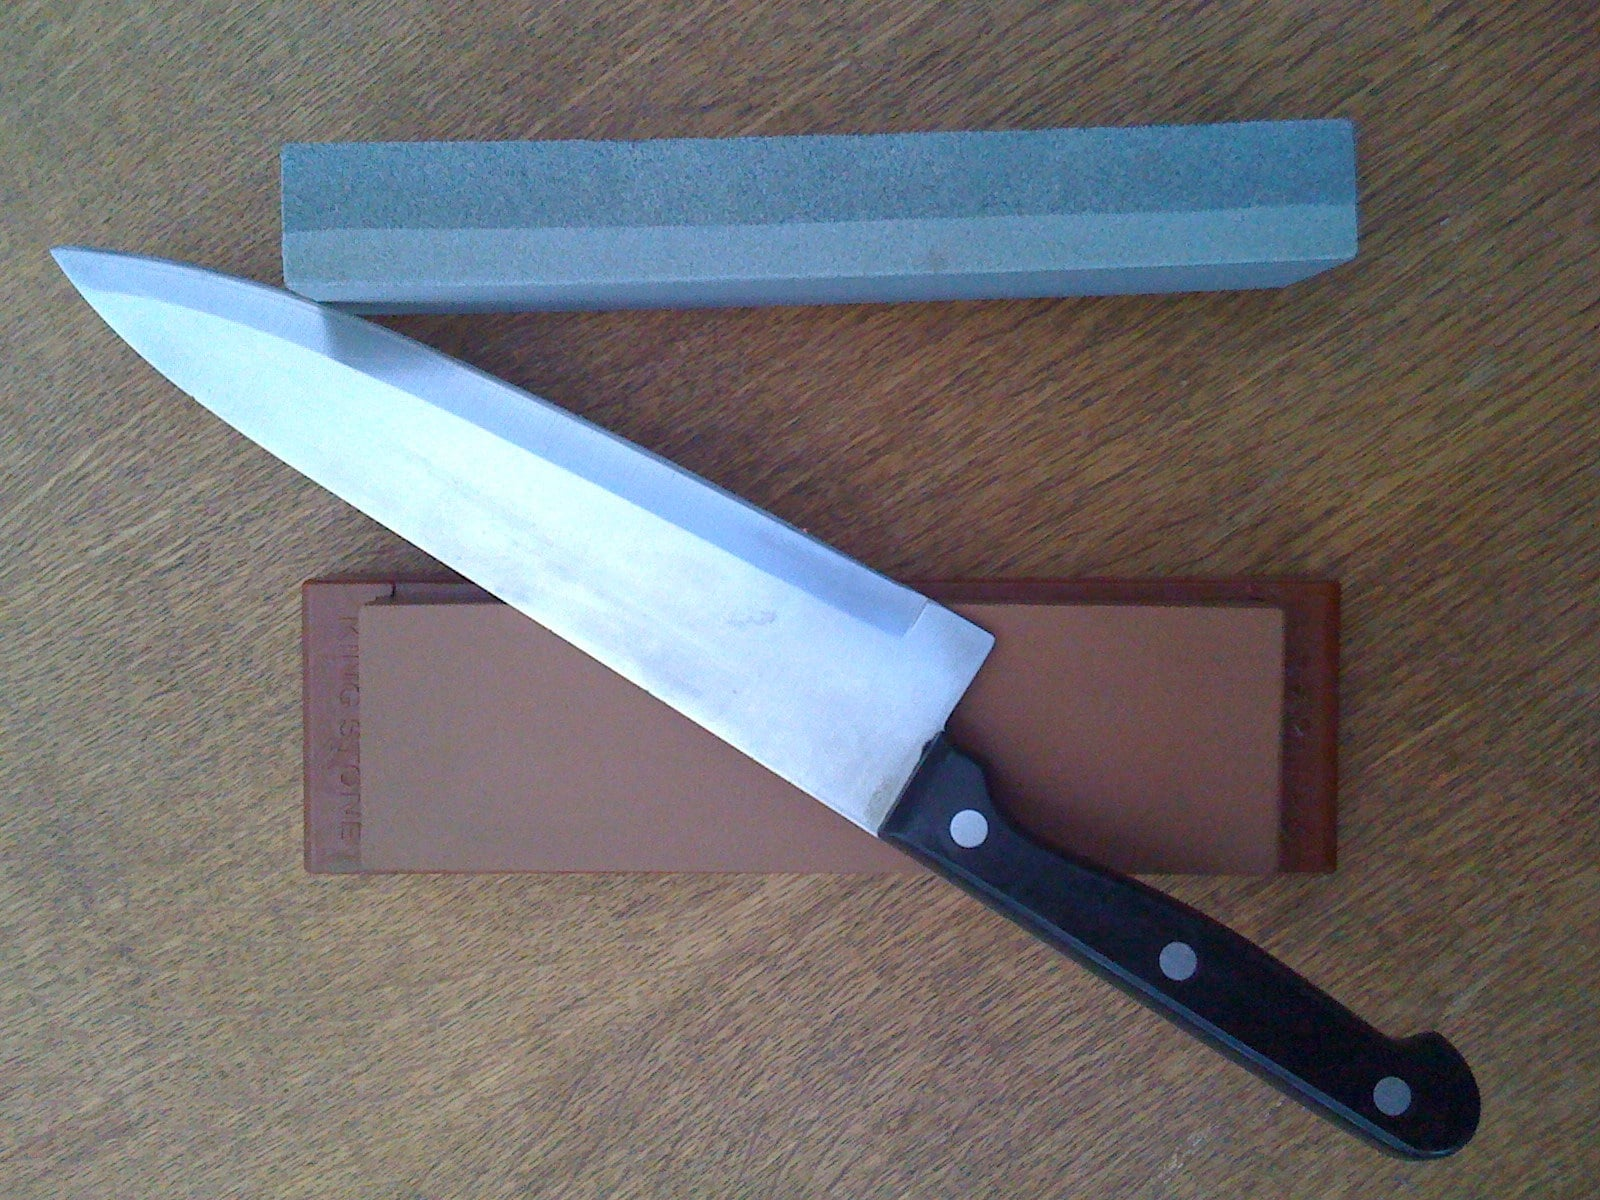 How to sharpen knives - practical tips